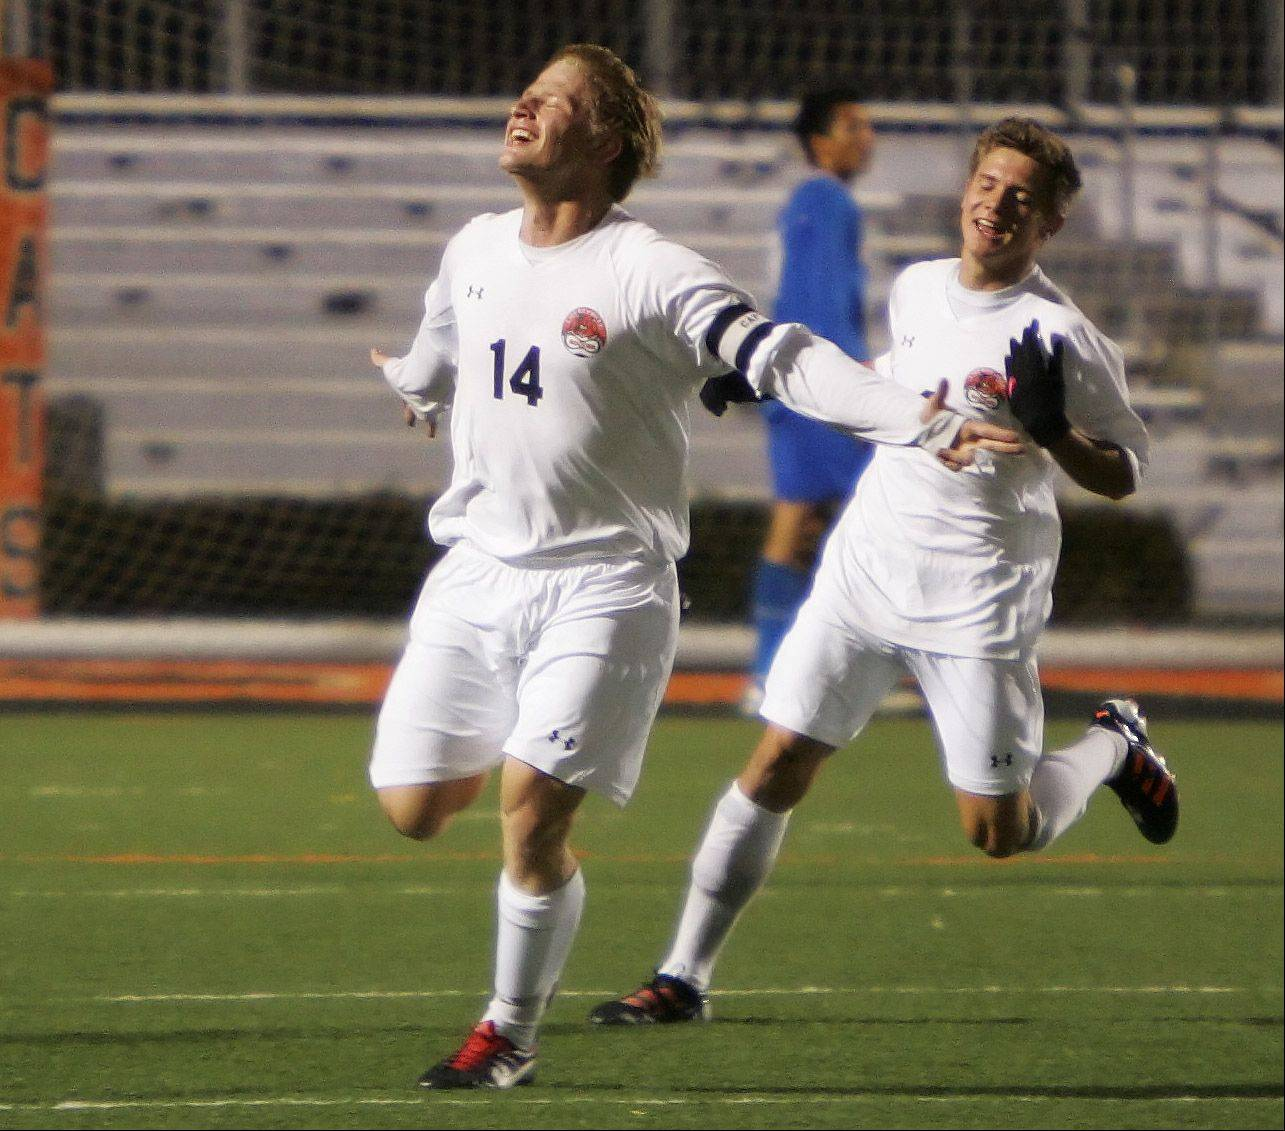 Libertyville forward Lloyd Chatfield III celebrates after scoring the first Thursday against Warren at Libertyville. Libertyville's Ralf Zehnter is to the right.